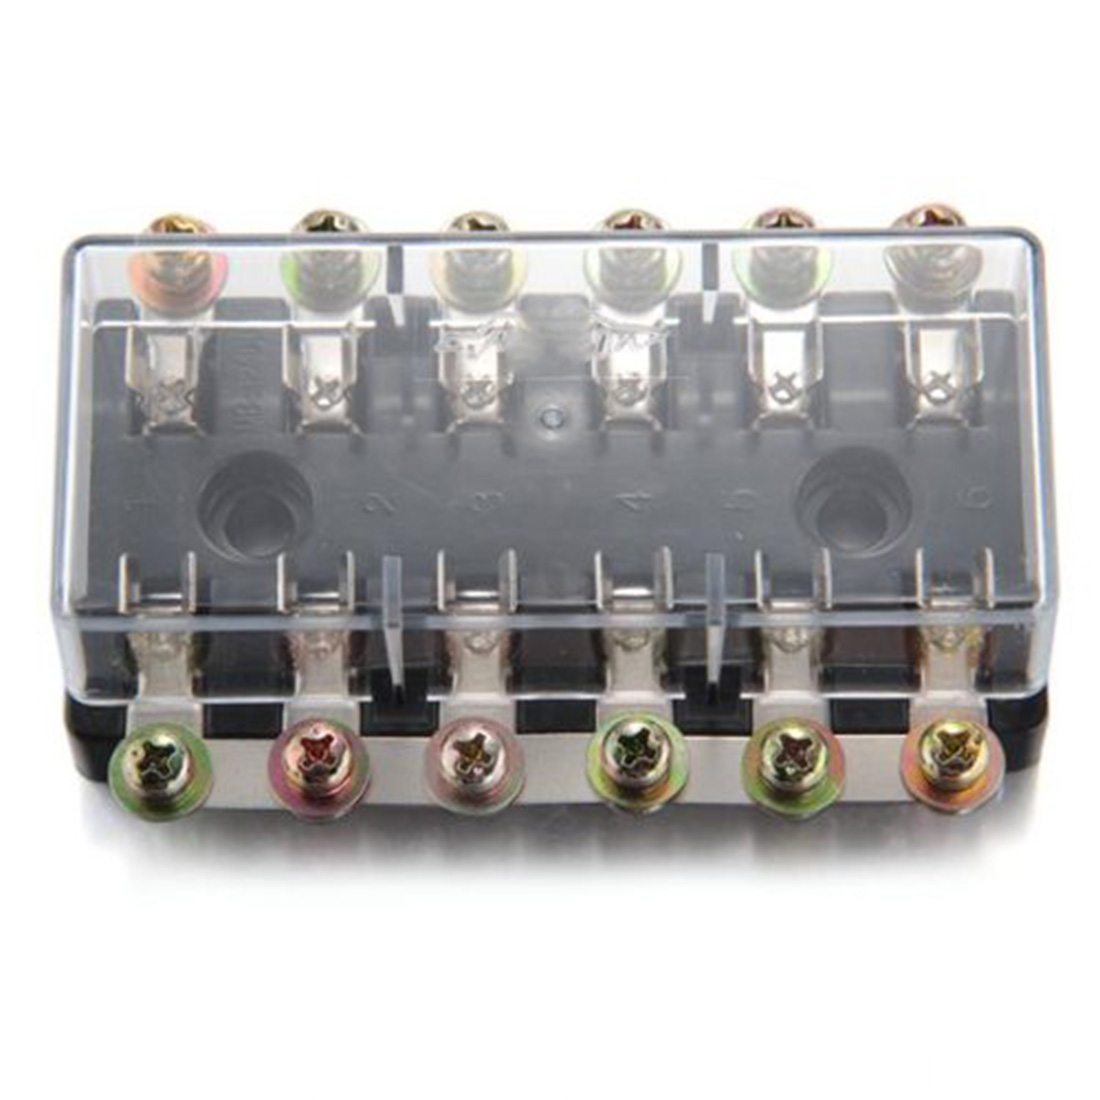 Marsnaska Universal 12v 6 Way Fusebox Fuse Blade Box Fuseholder Description6 Suitable For Agc And Jso Fuses1 In Out Maximum Load 90a 20a Per Wayvoltage Package Includes